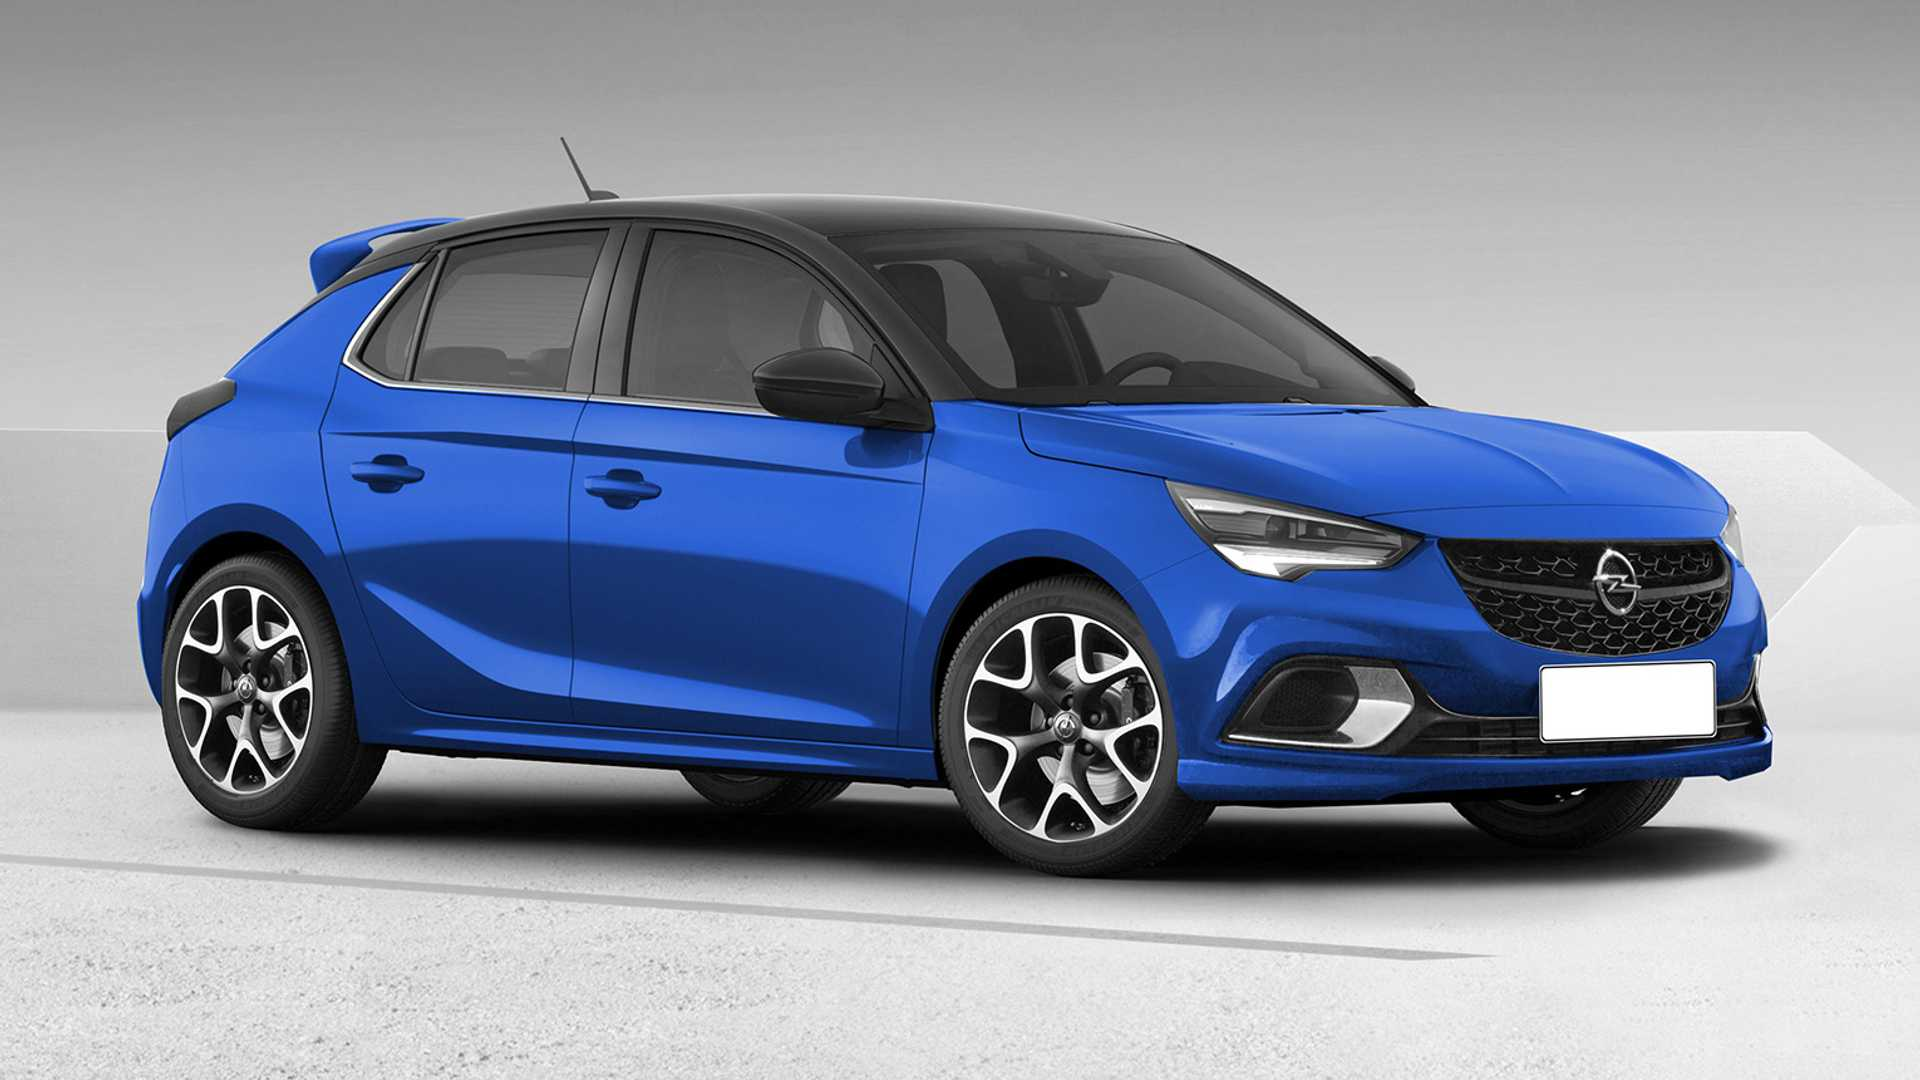 49 The Best 2020 Vauxhall Corsa VXR Review And Release Date